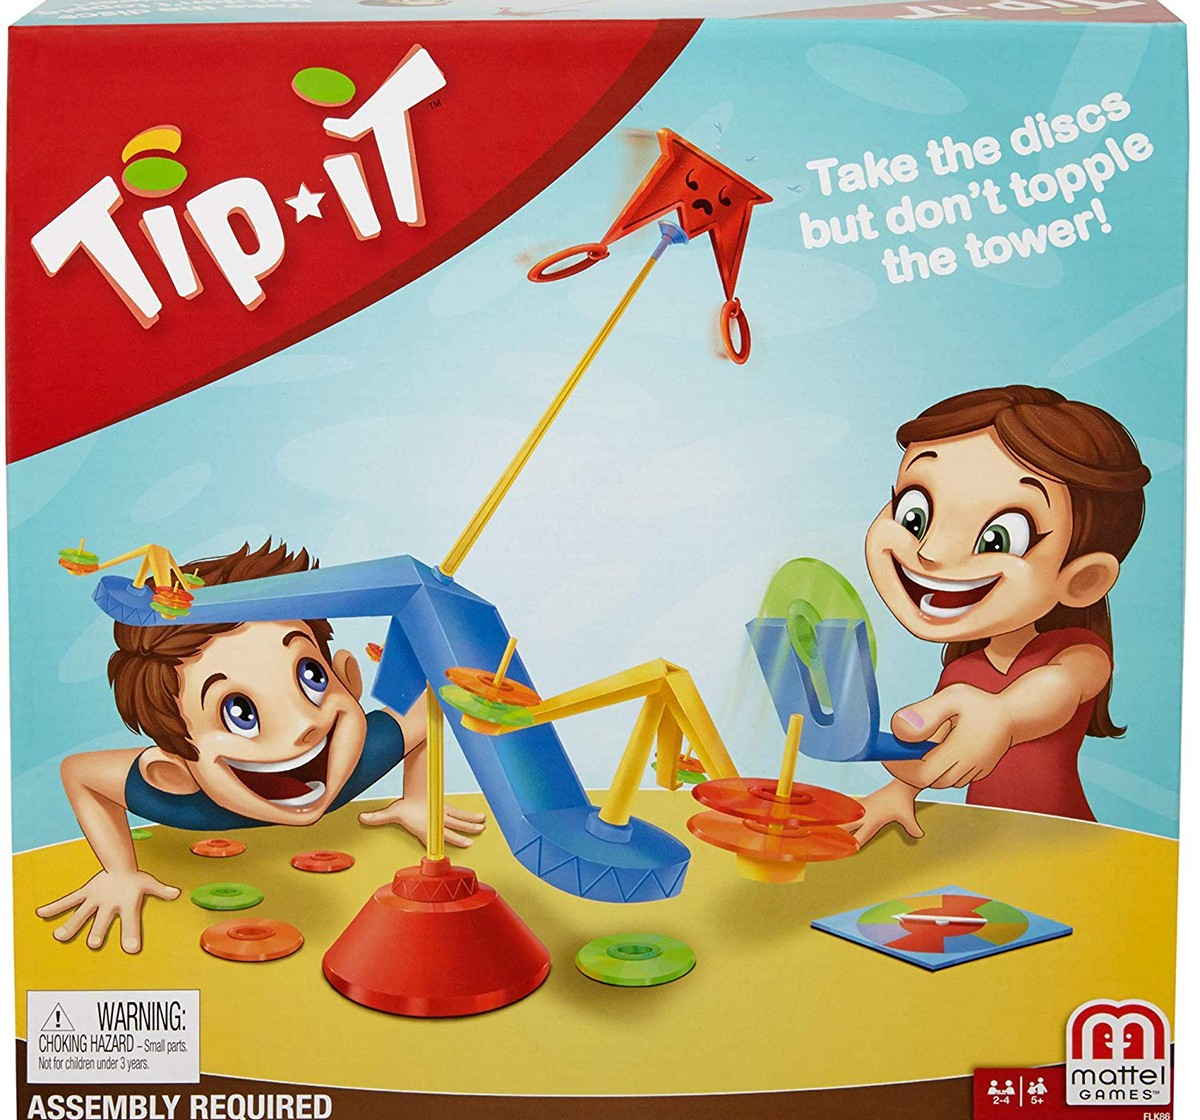 Mattel Games Tip It-2-4 Players Games for Kids age 5Y+